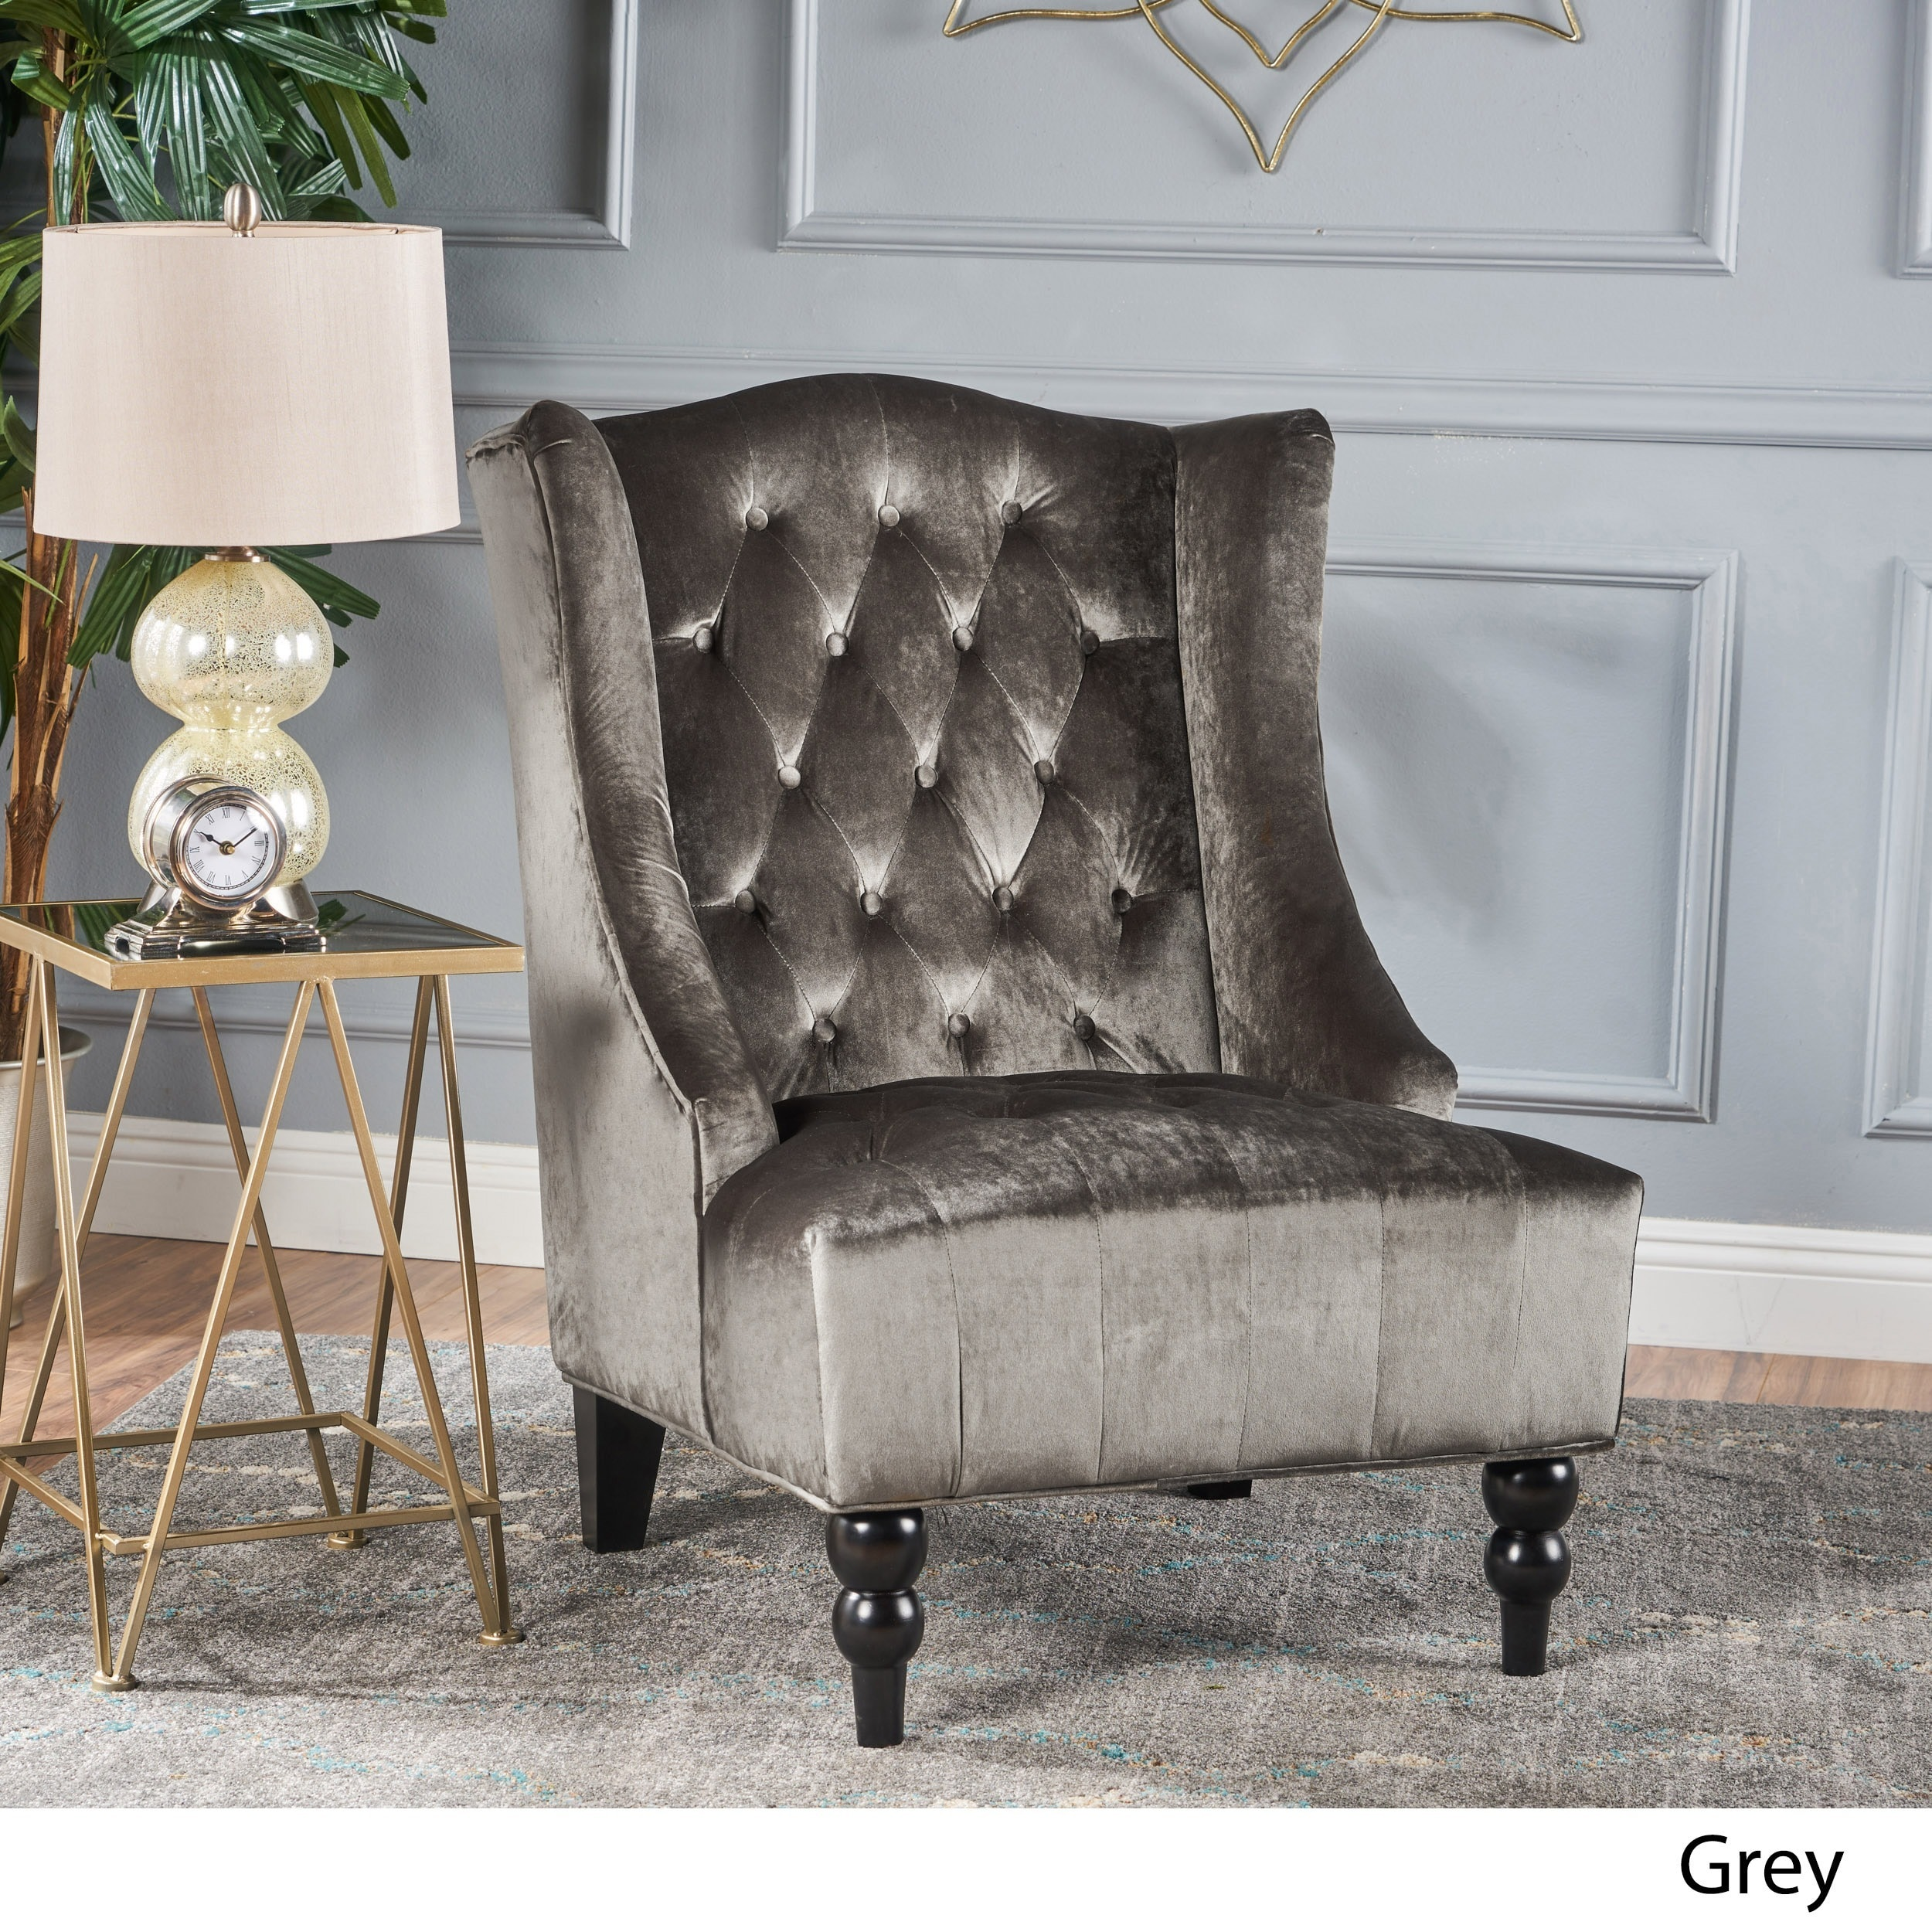 buy grey living room chairs online at overstock com our best